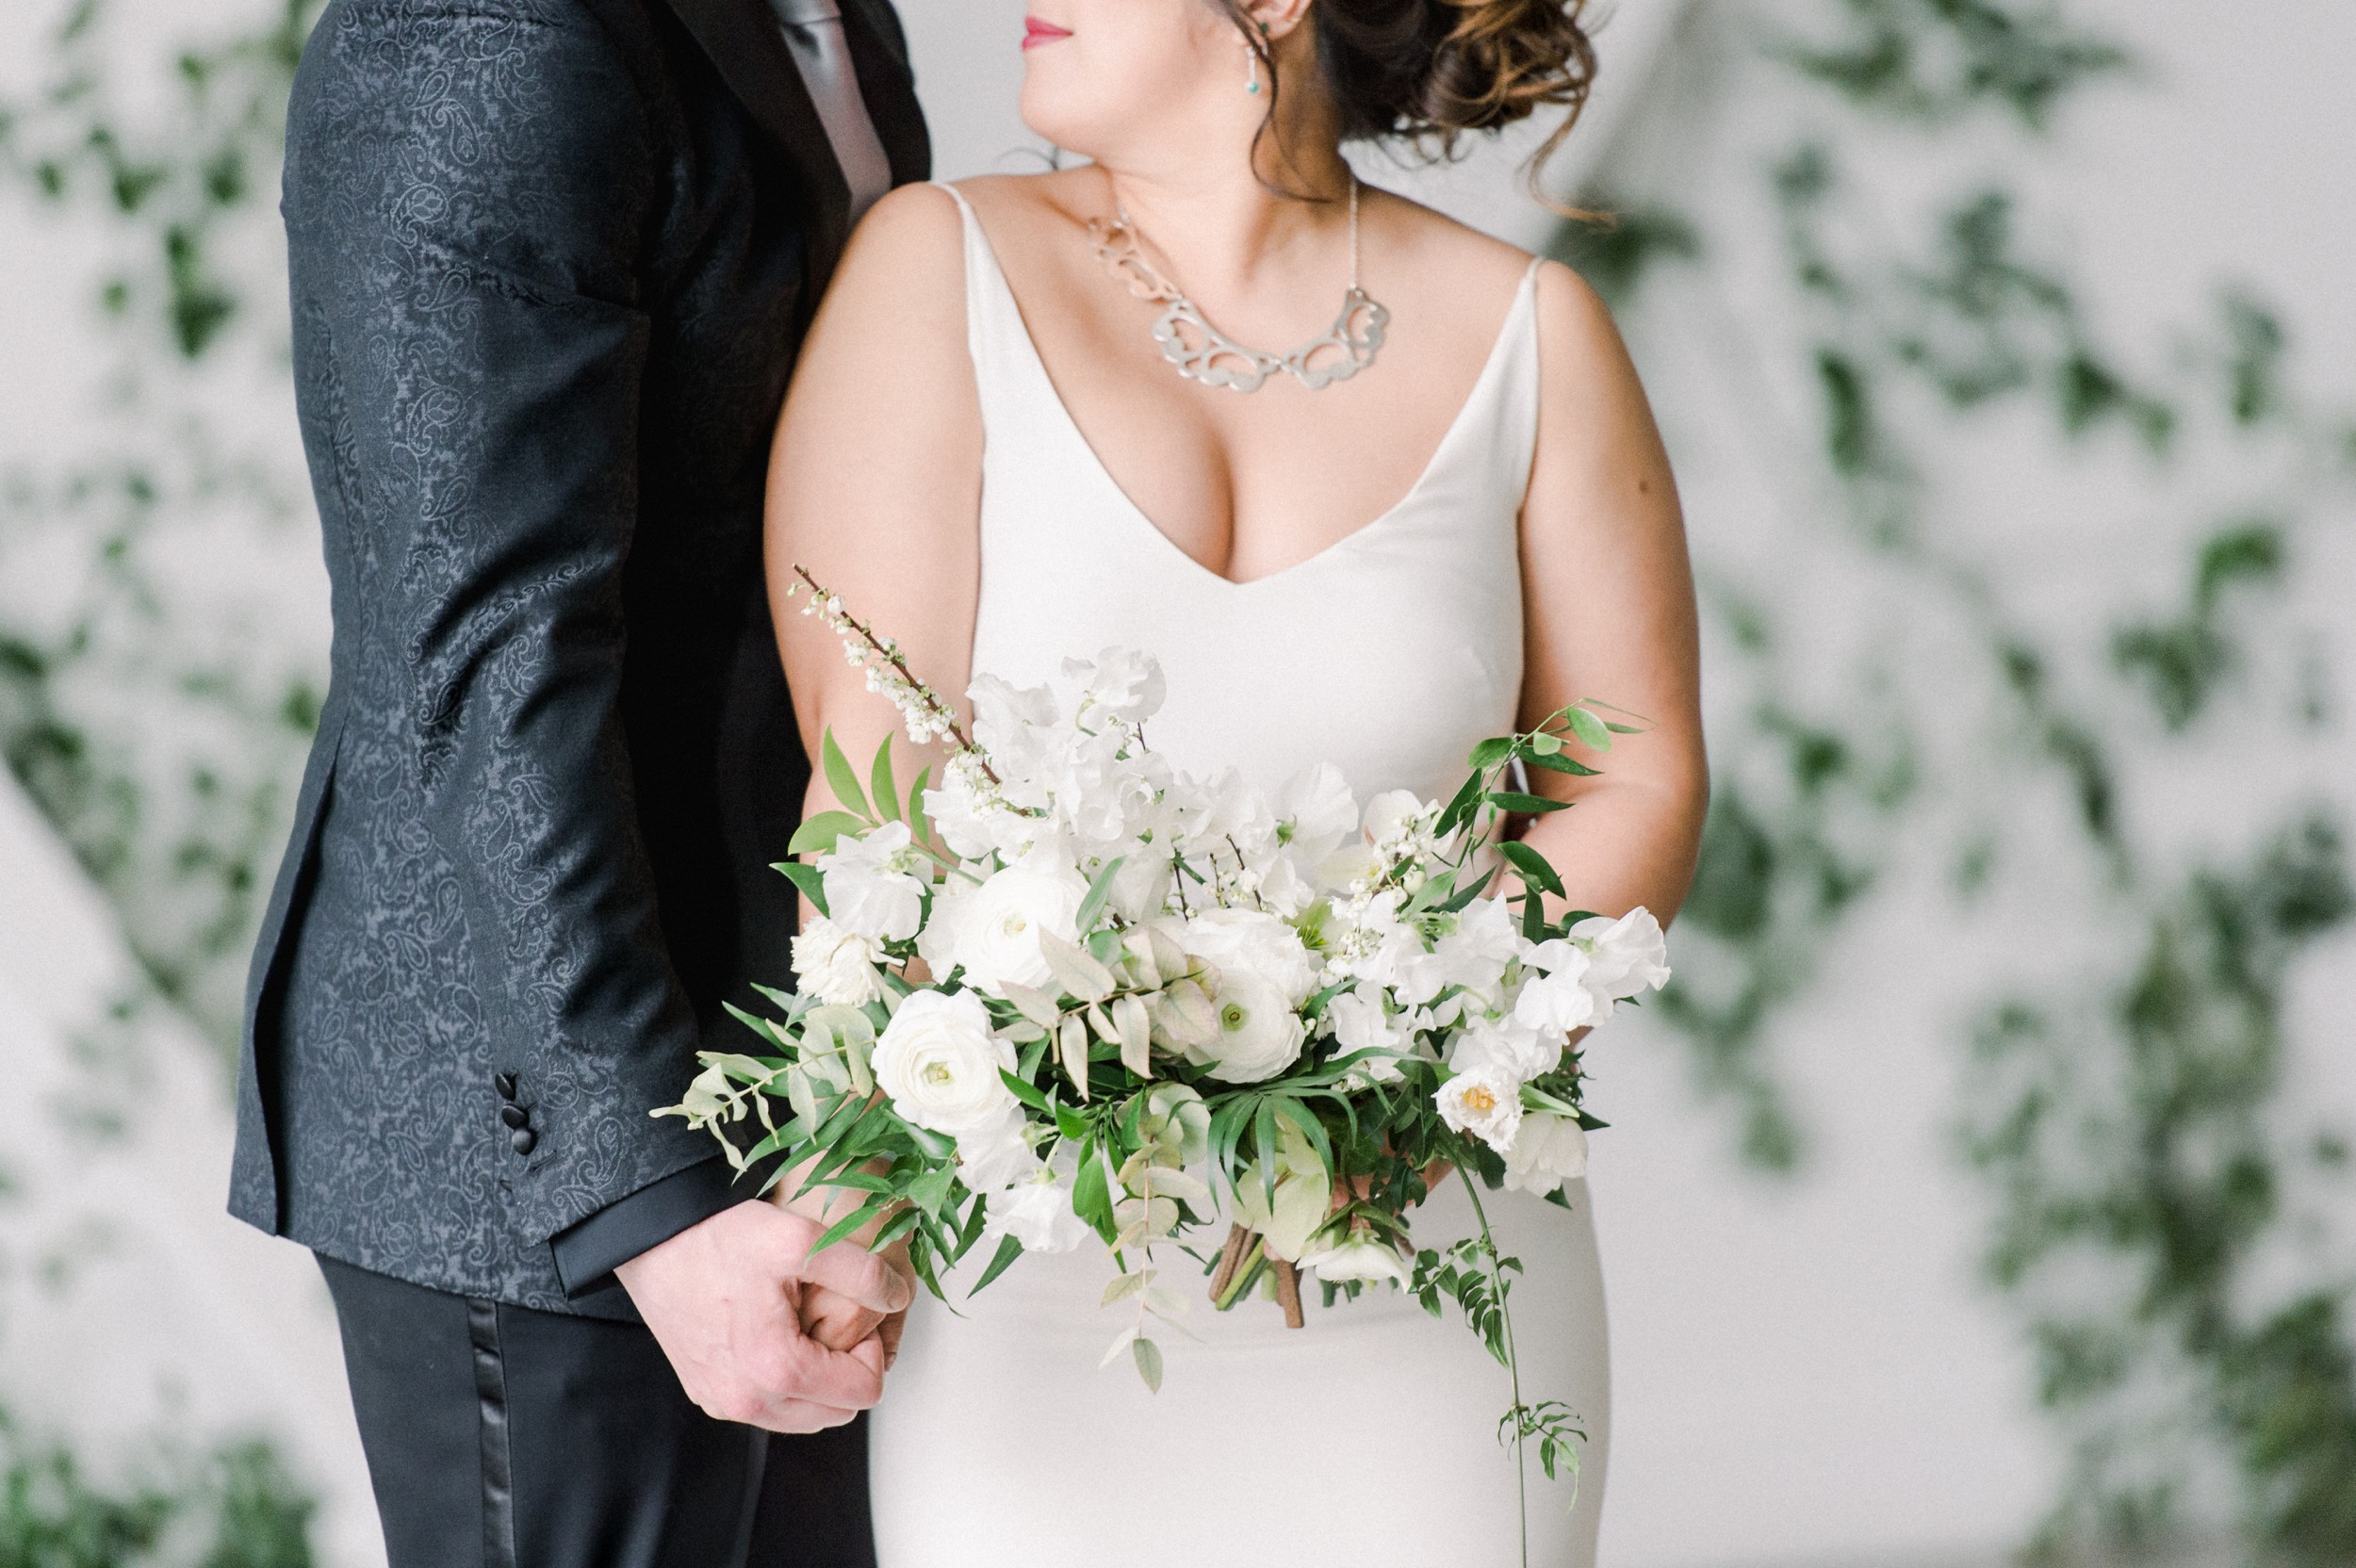 Artists for humanity epicenter wedding | Boston wedding | modern white bridal bouquet by Twig & Briar | green botanical wedding inspiration